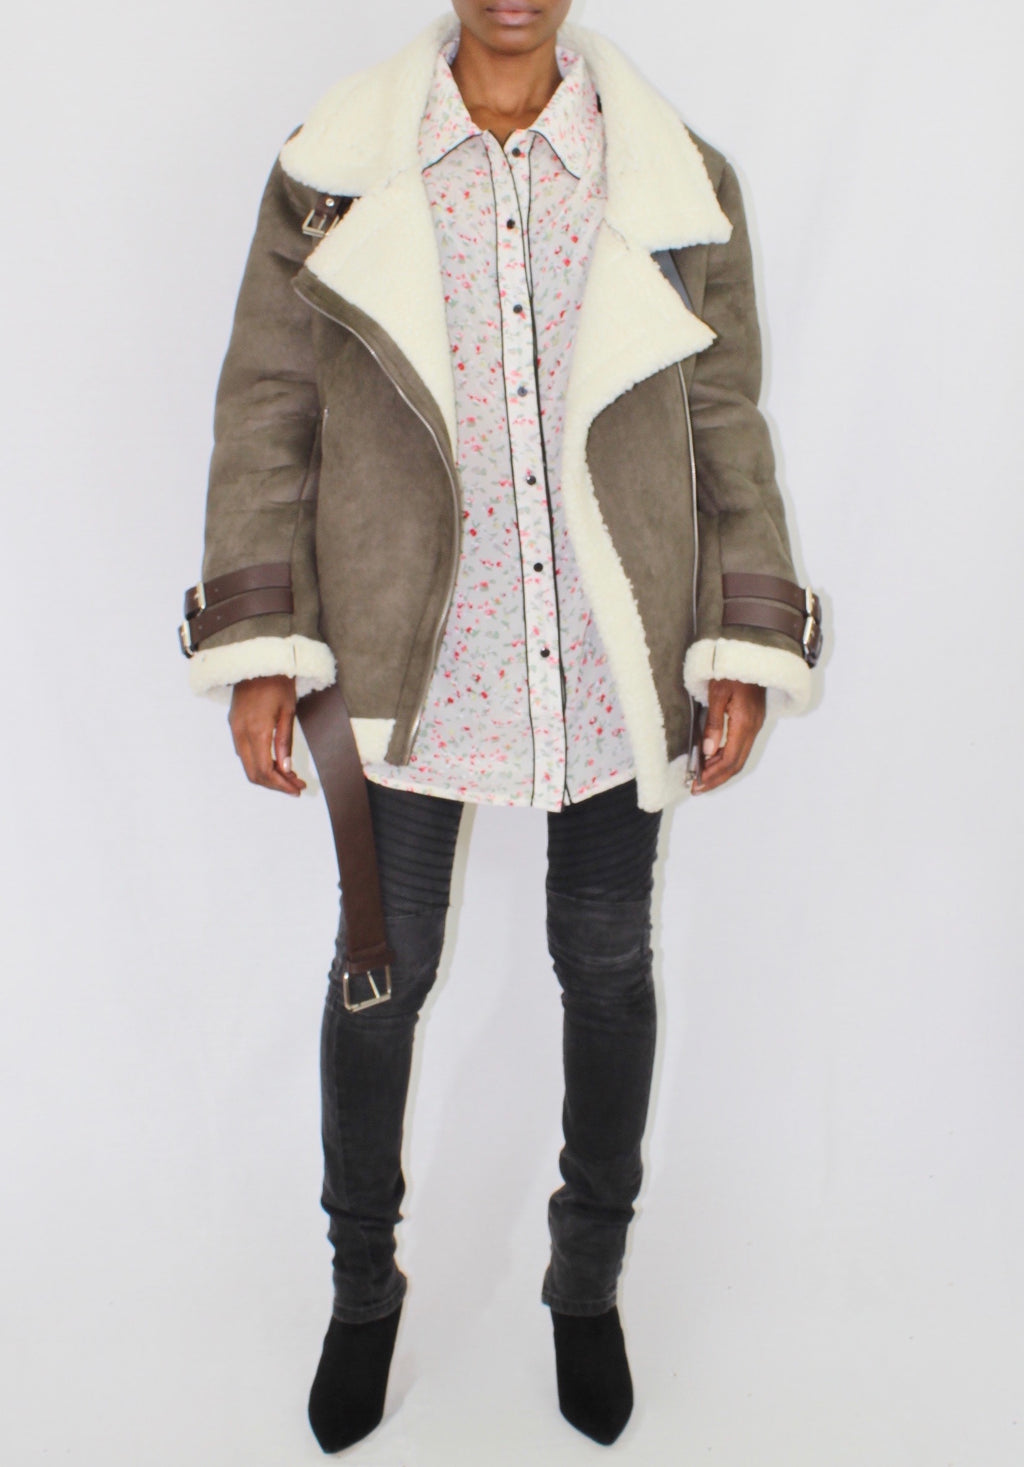 women's olive aviator jacket. shop aviator jackets at Coveted Style